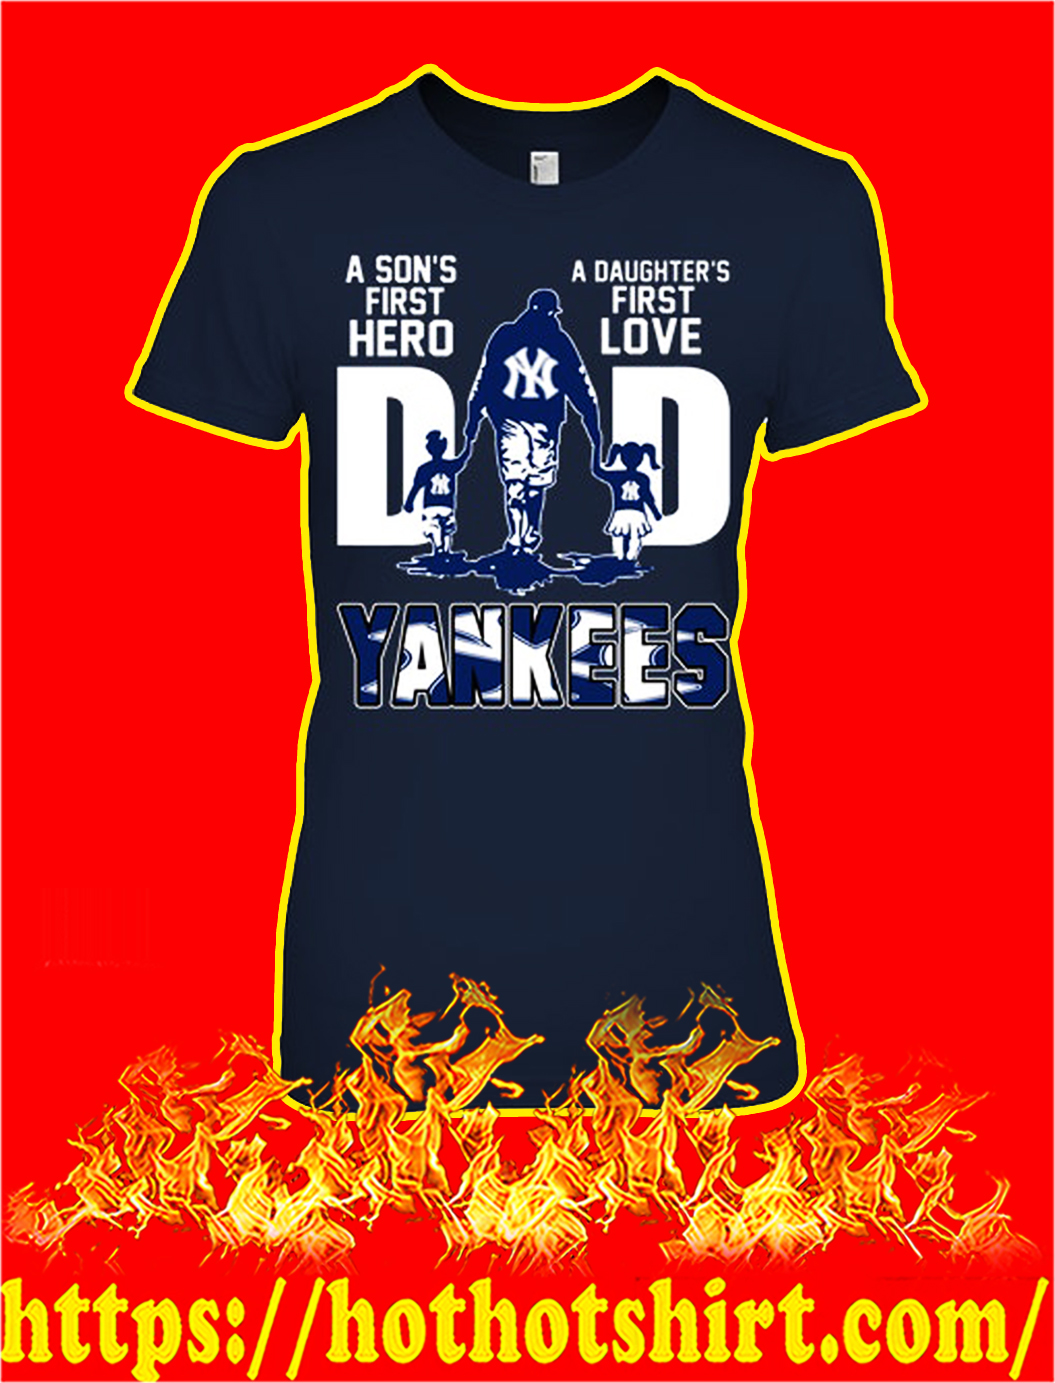 Yankees dad a son's first hero a daughter's first love lady shirt